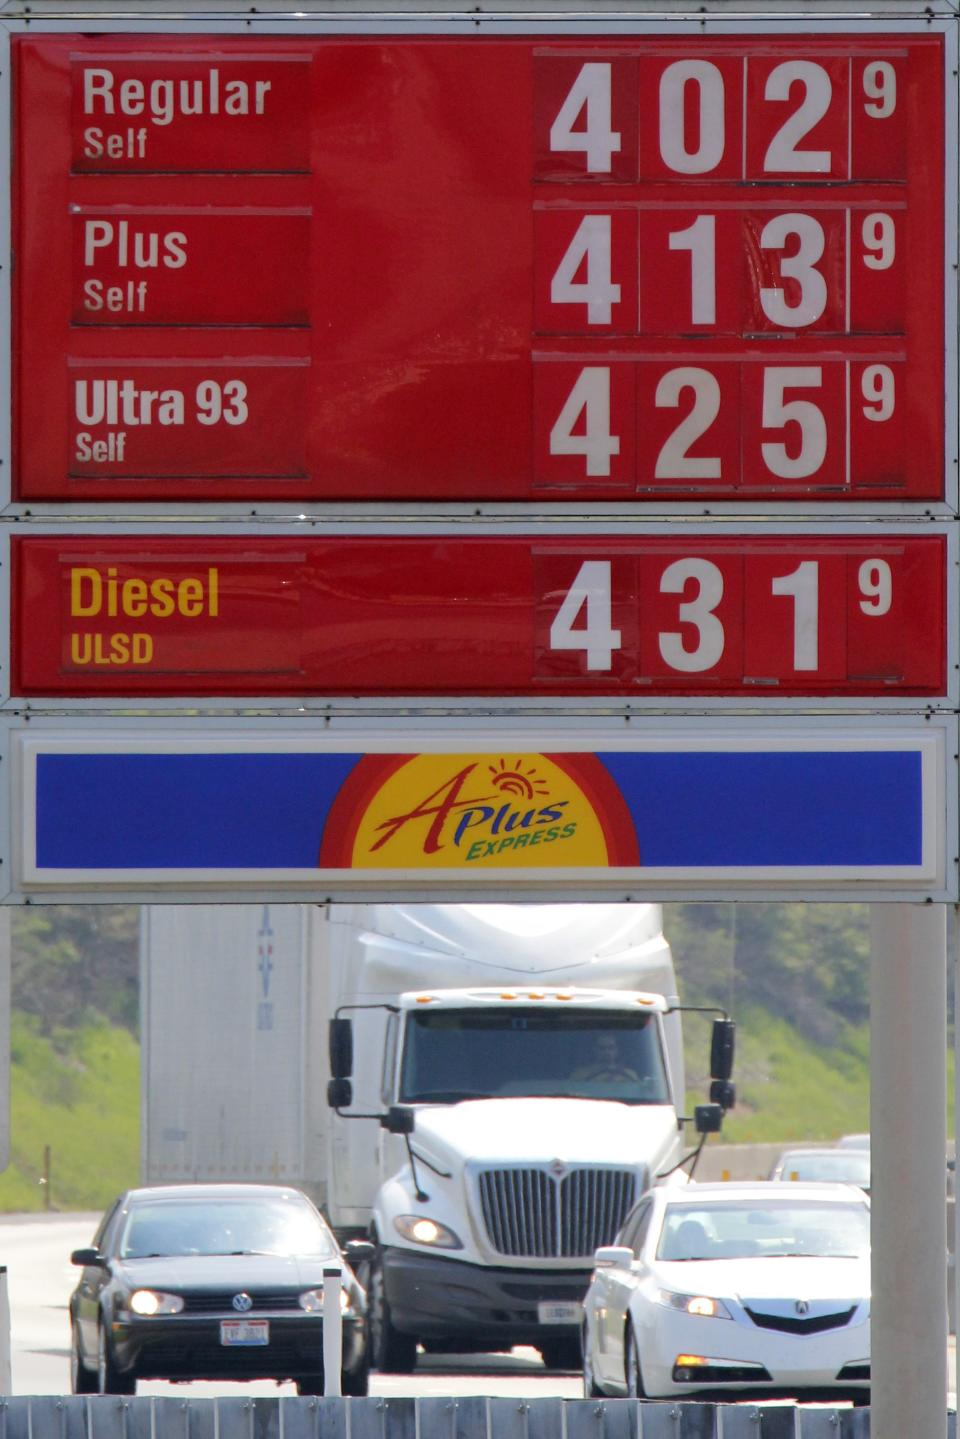 In this April 15, 2012 photo, gasoline prices greet motorists at the Midway Plaza on the Pennsylvania Turnpike in Bedford, Pa. It's Memorial Day weekend and our obsession with the price of gasoline is in focus again. (AP Photo/Gene J. Puskar)